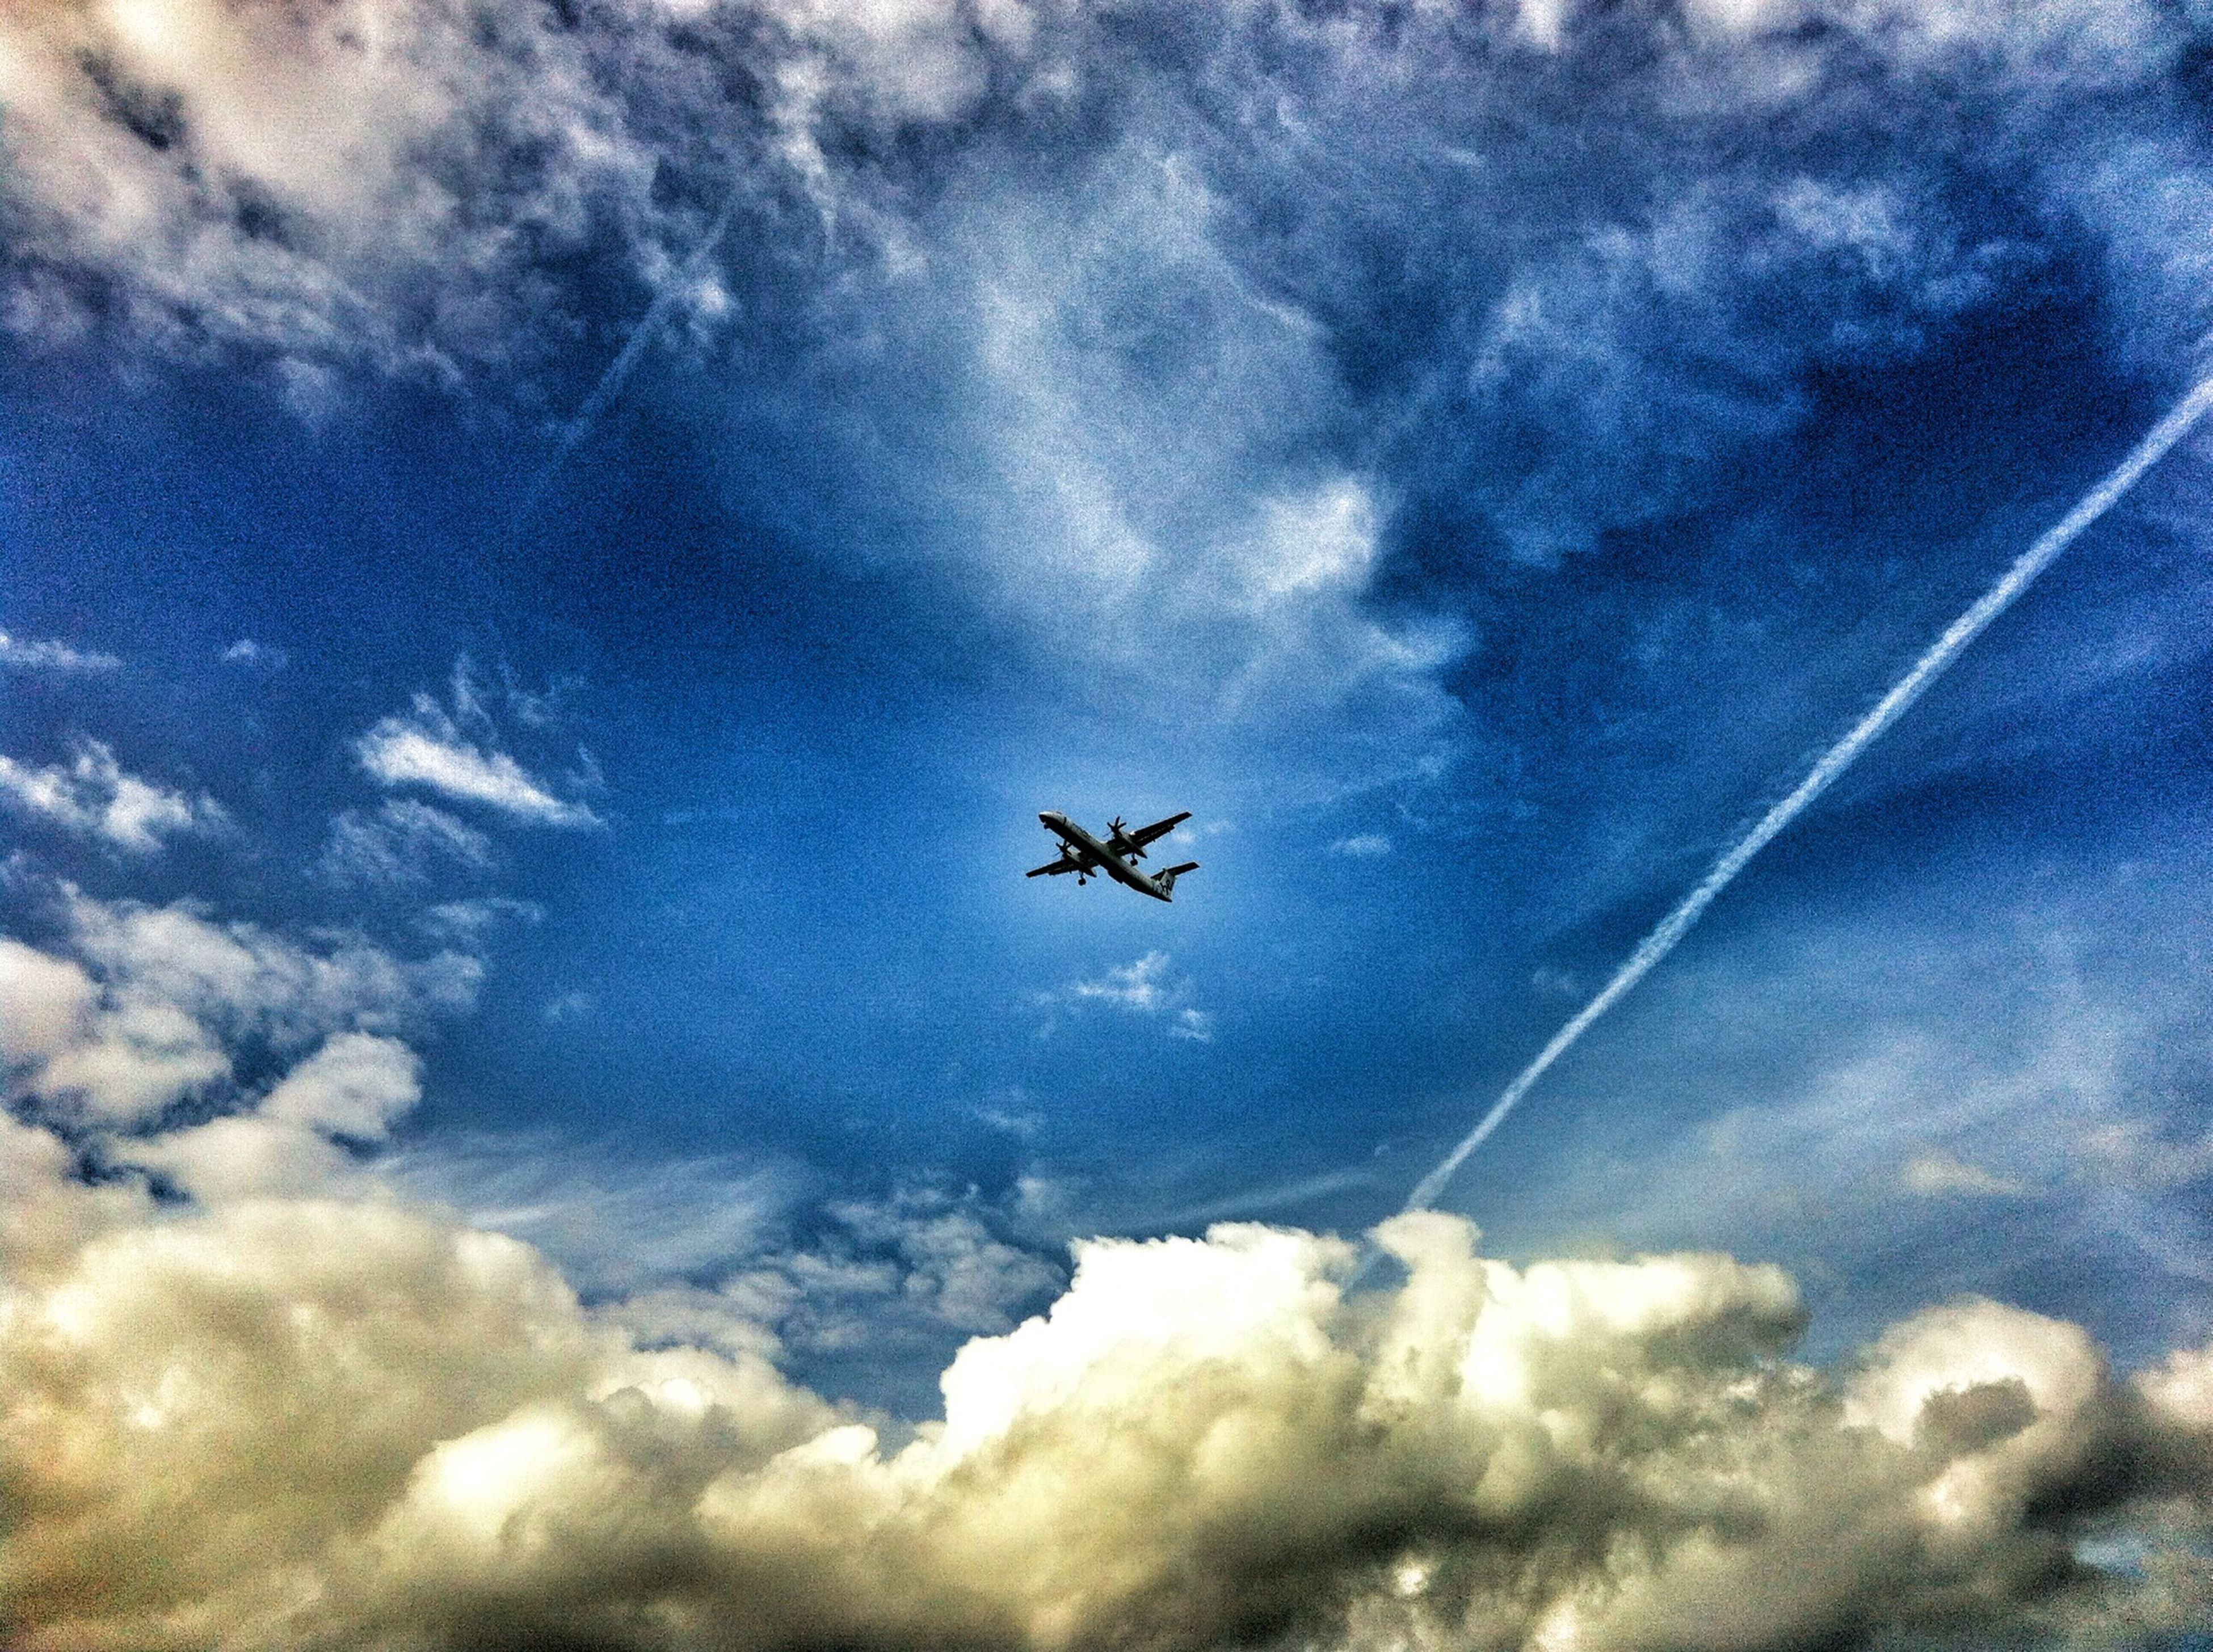 transportation, airplane, air vehicle, mode of transport, flying, sky, cloud - sky, mid-air, low angle view, on the move, public transportation, cloudy, travel, journey, cloud, aircraft wing, cloudscape, commercial airplane, nature, aircraft